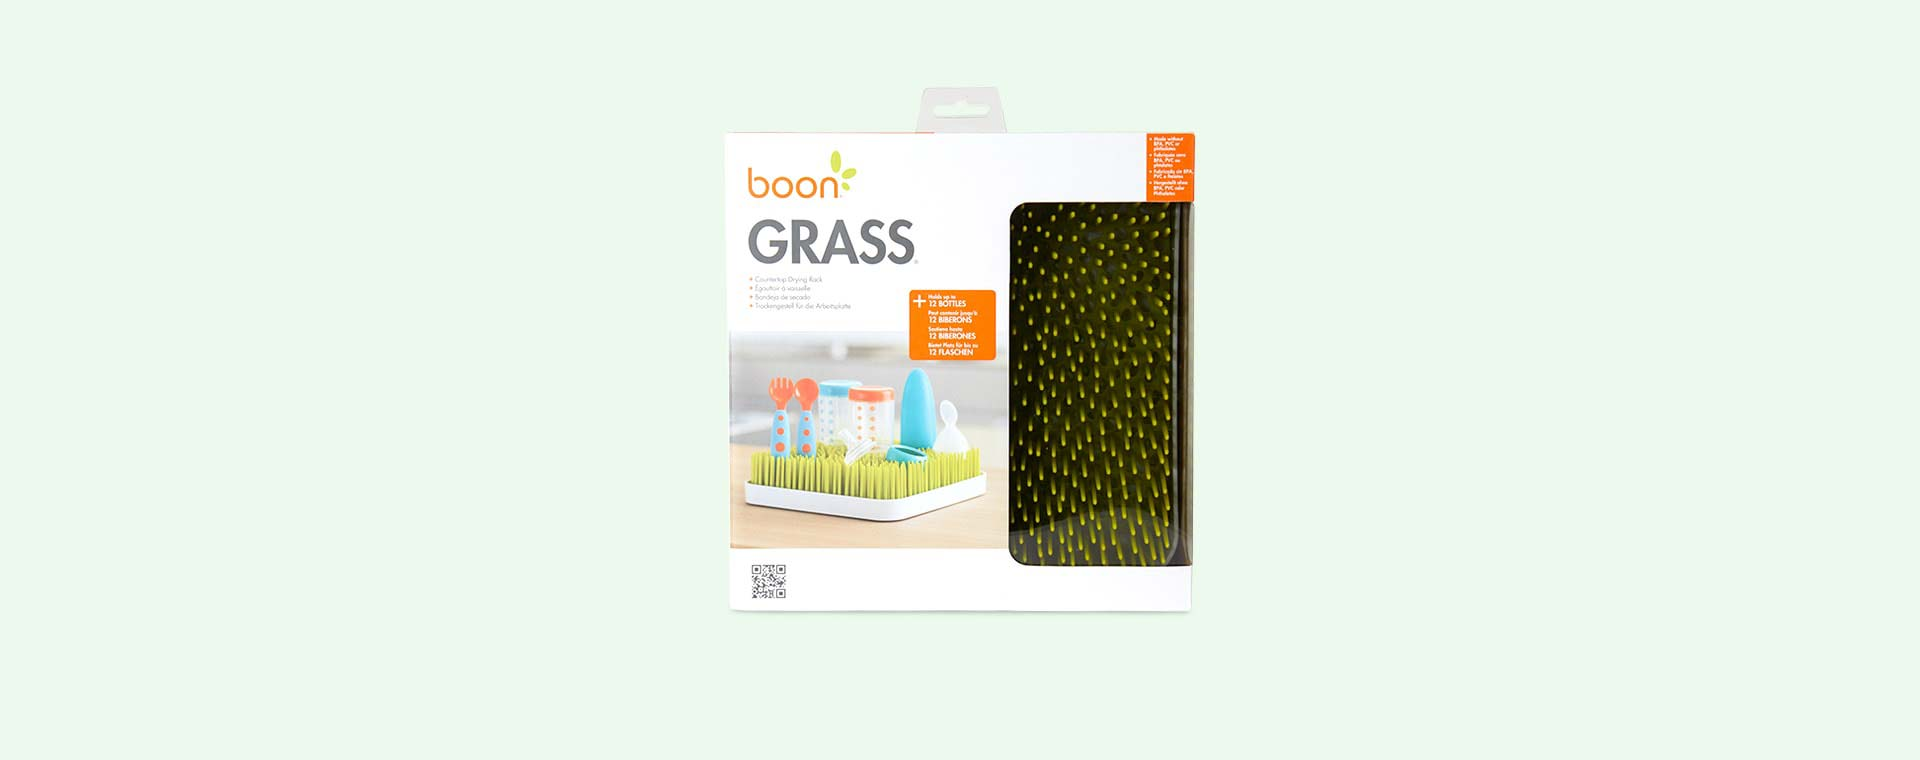 Green Boon Grass Drying Rack